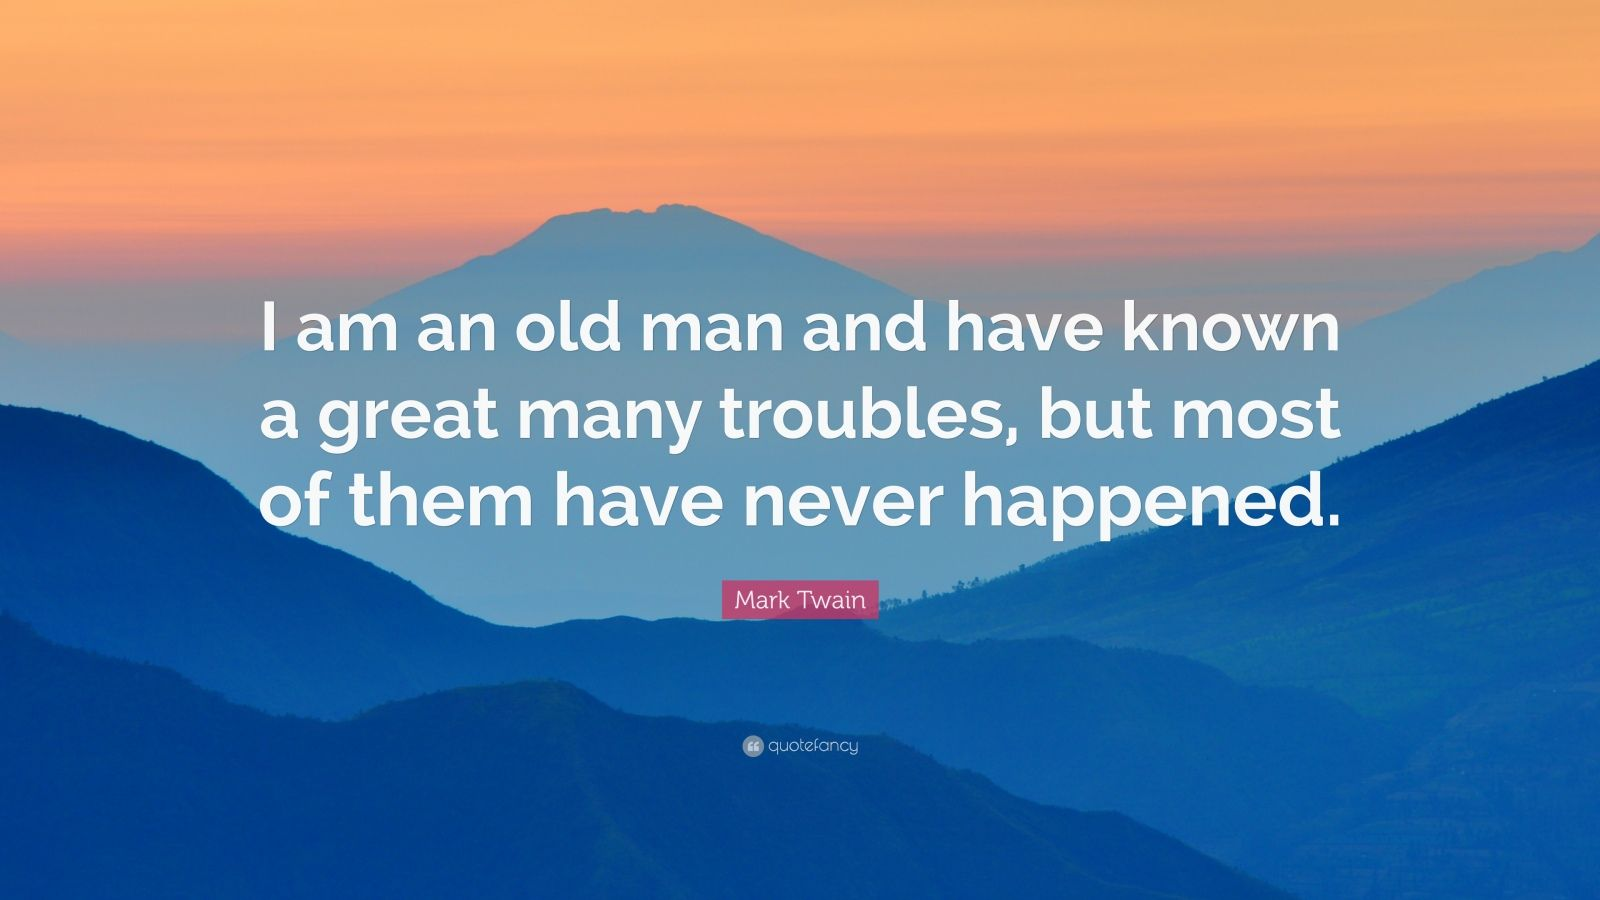 """Mark Twain Quote: """"I am an old man and have known a great many troubles, but most of them have never happened."""""""